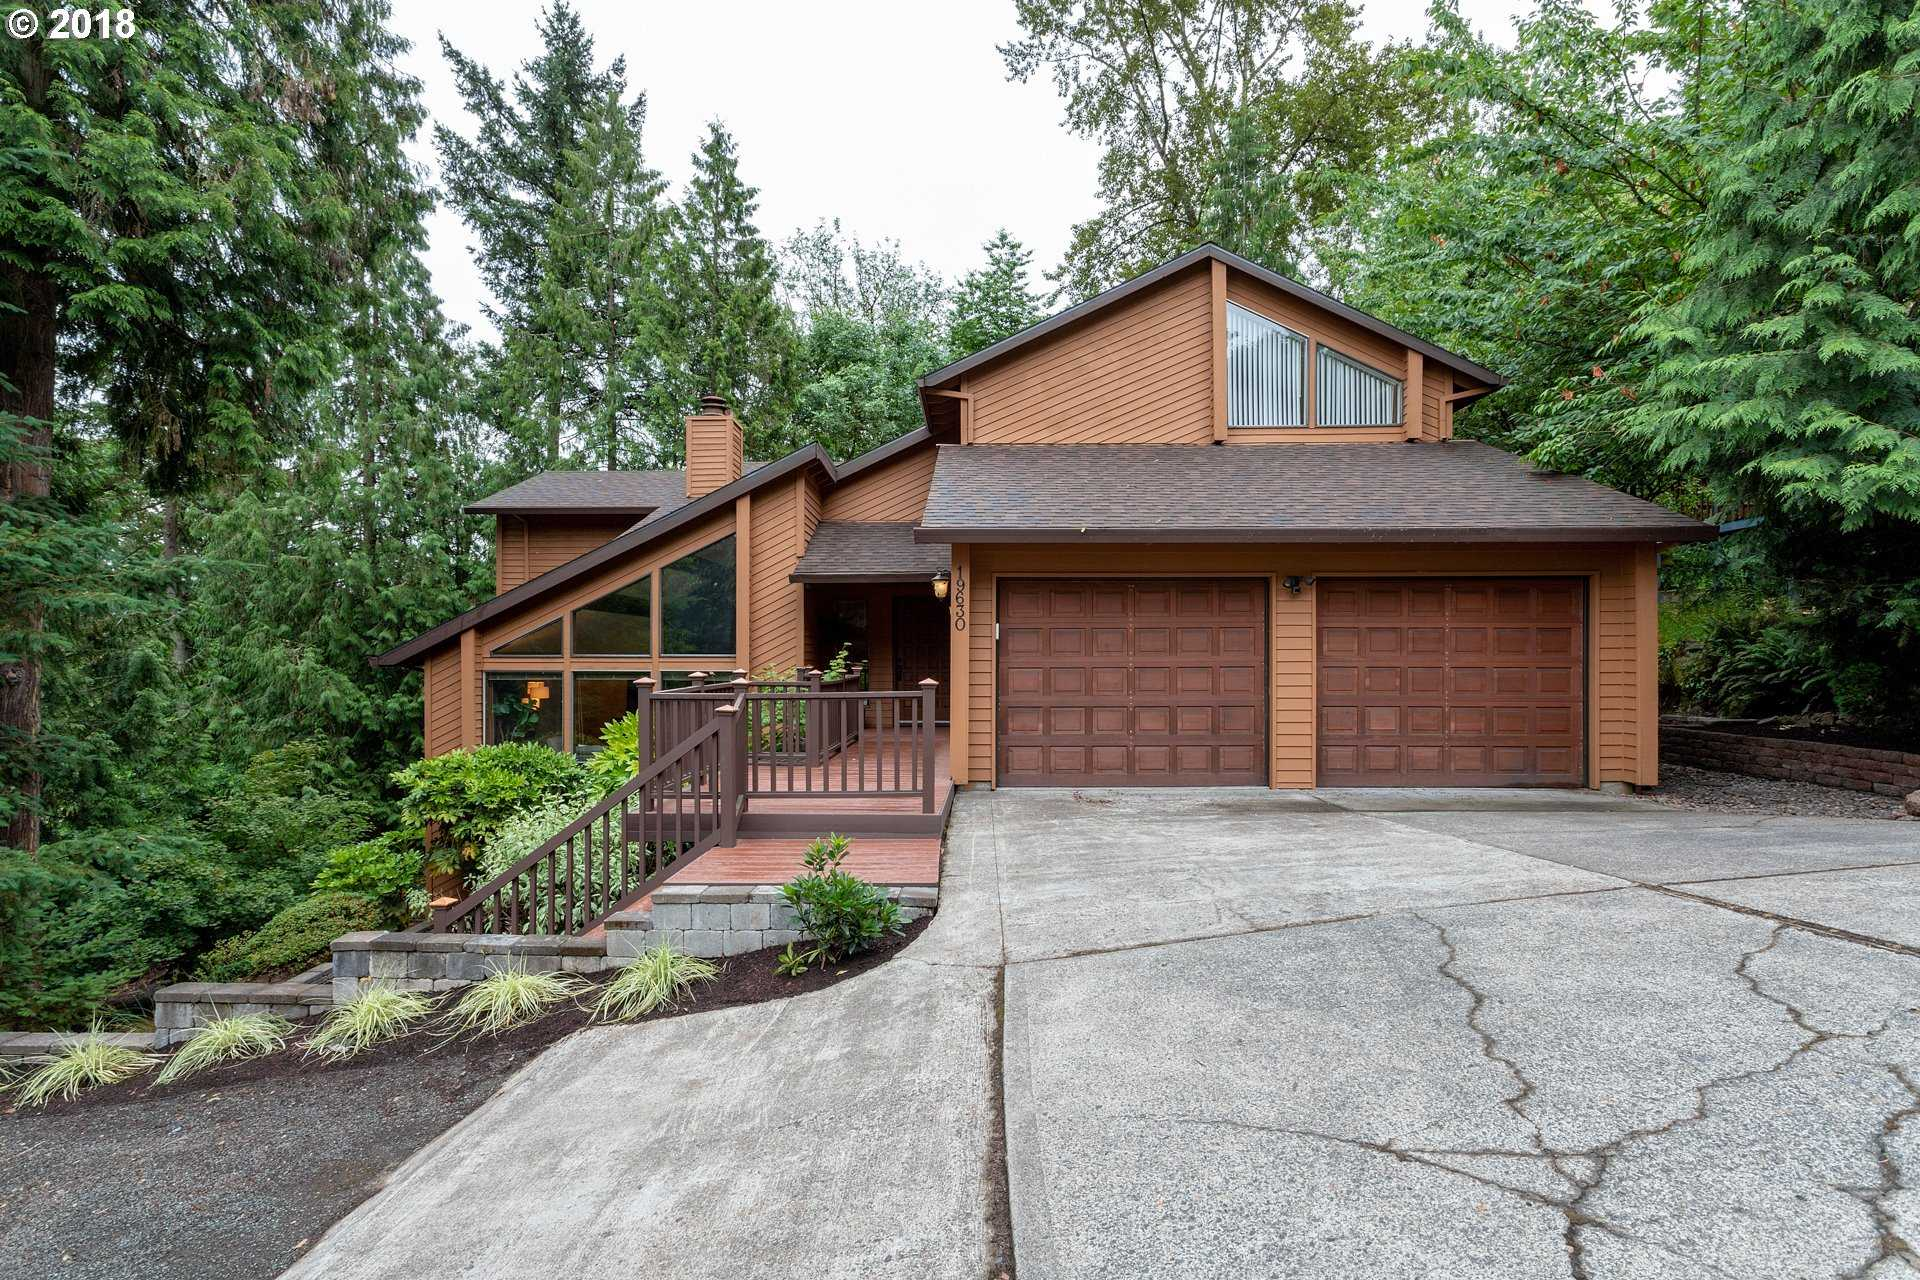 $479,900 - 3Br/3Ba -  for Sale in West Linn